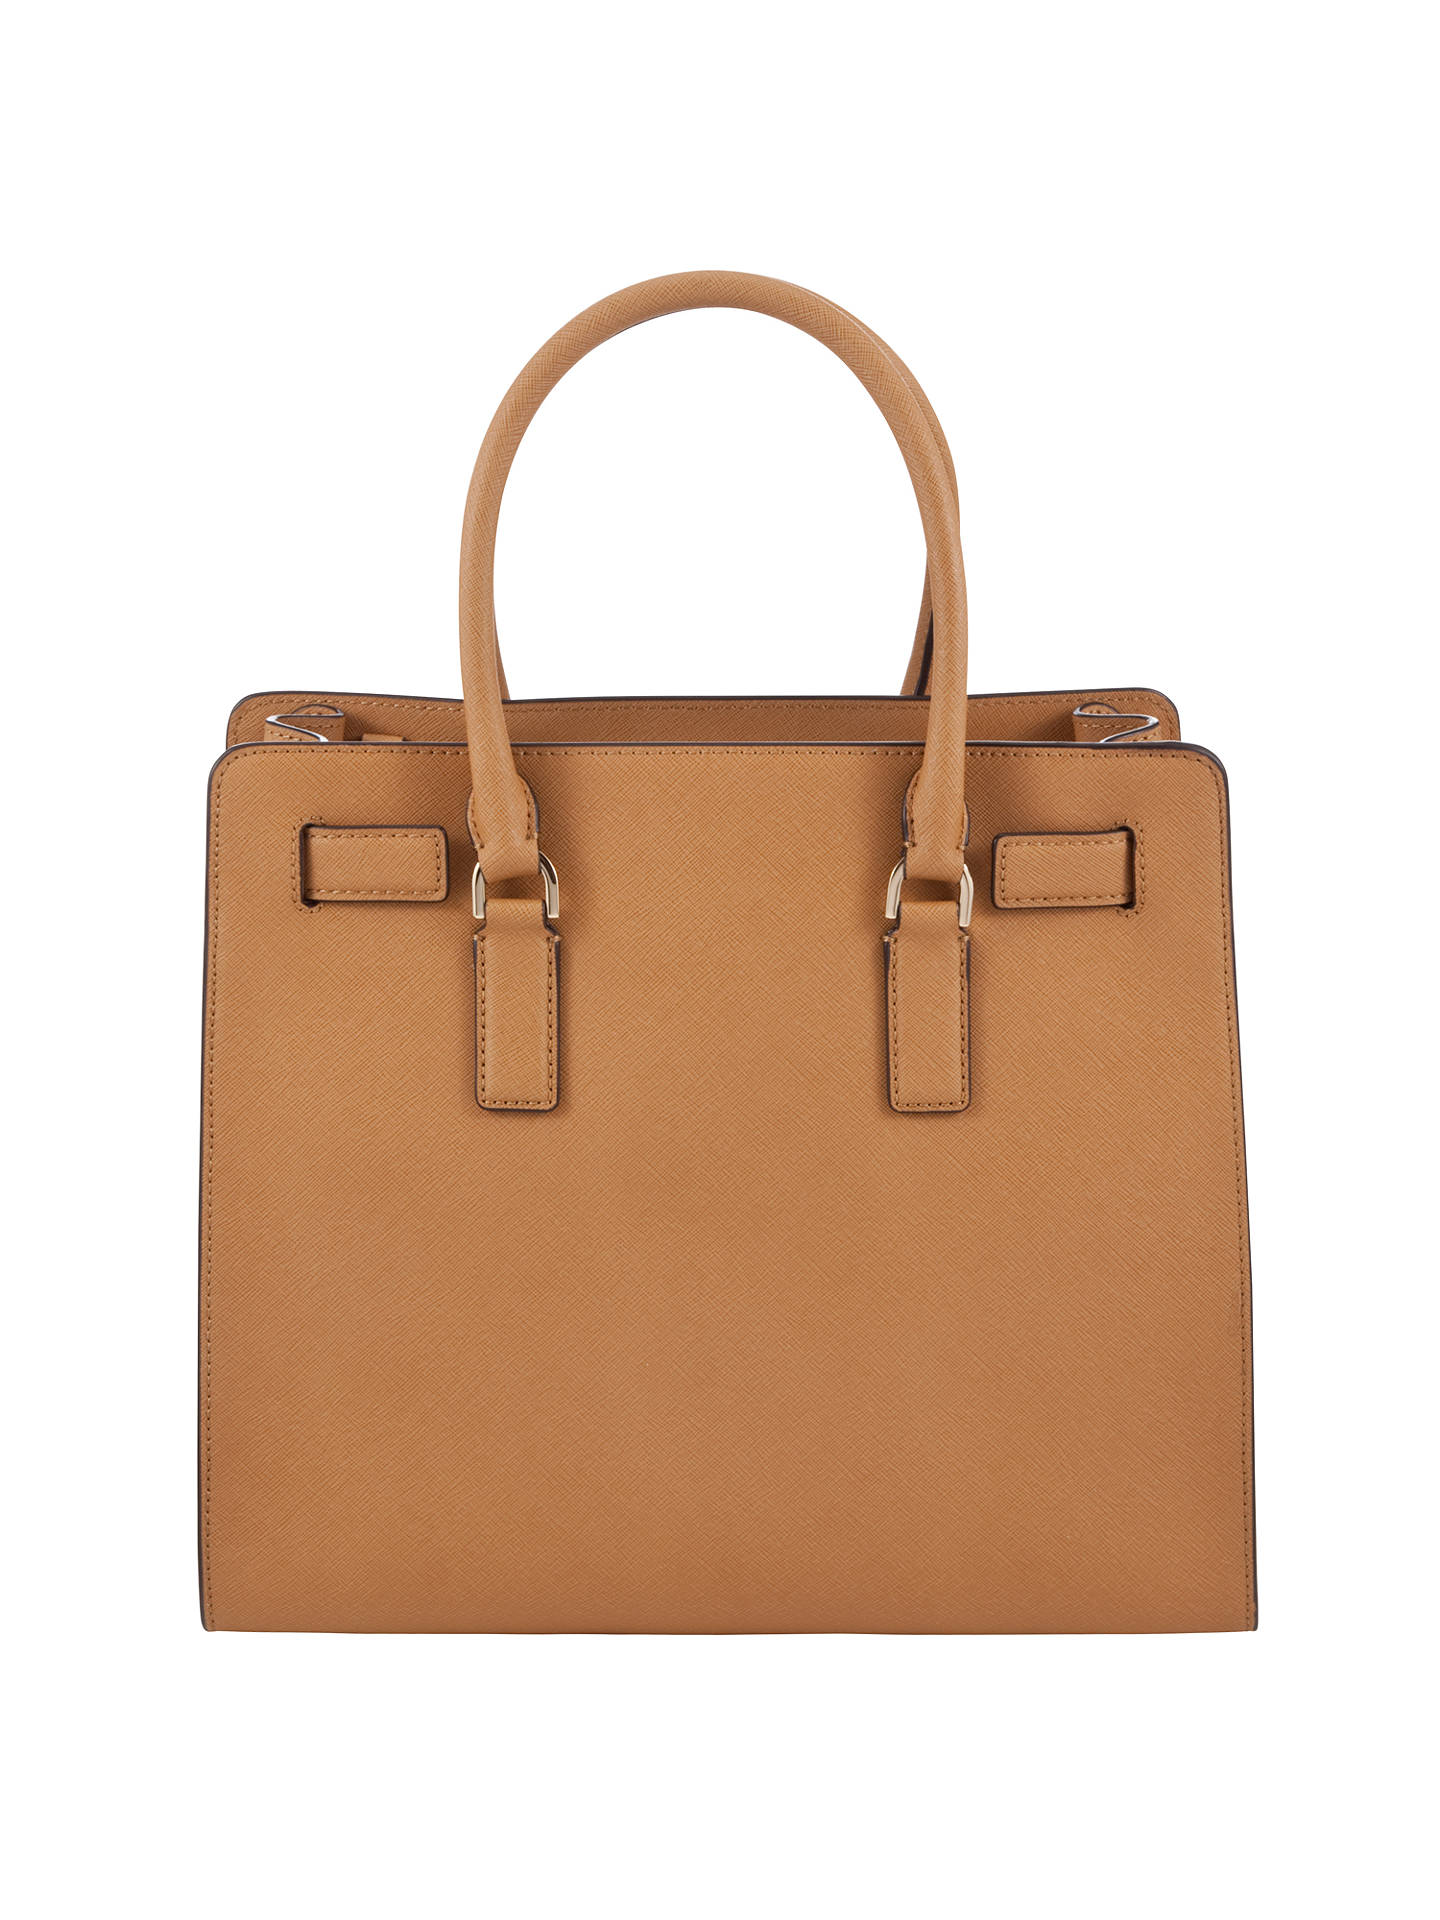 1b919ec7082f Buy MICHAEL Michael Kors Dillon Large Saffiano Leather Tote Bag, Peanut  Online at johnlewis.